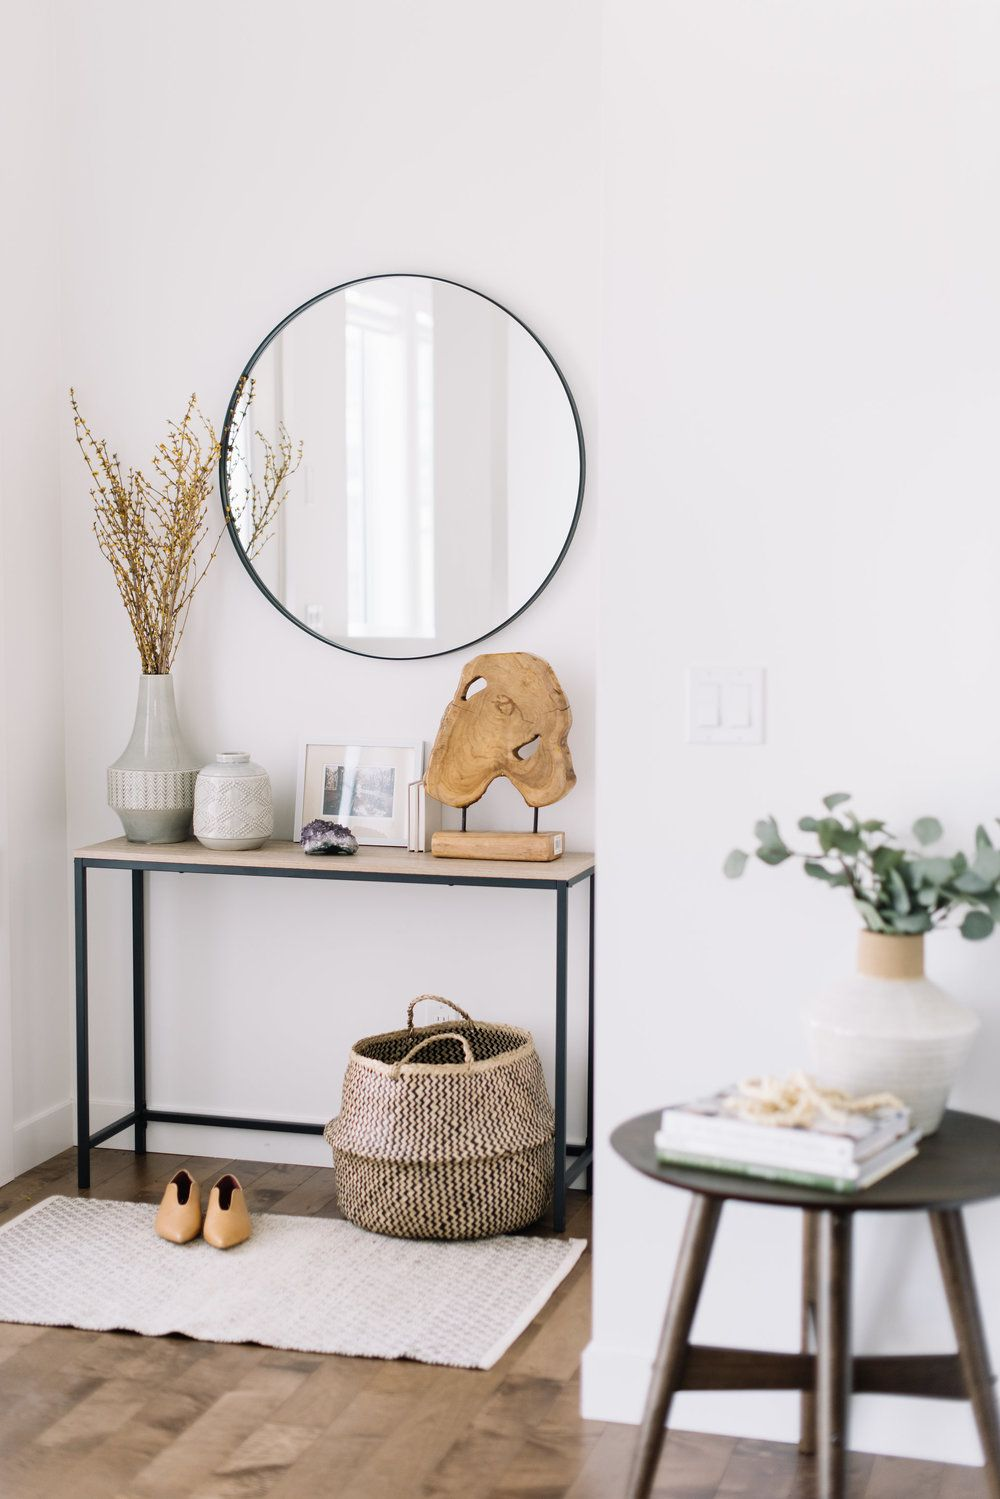 3 Ways To Use A Small Side Table 204 Park Hall Decor Small Side Table Modern Entryway Decor